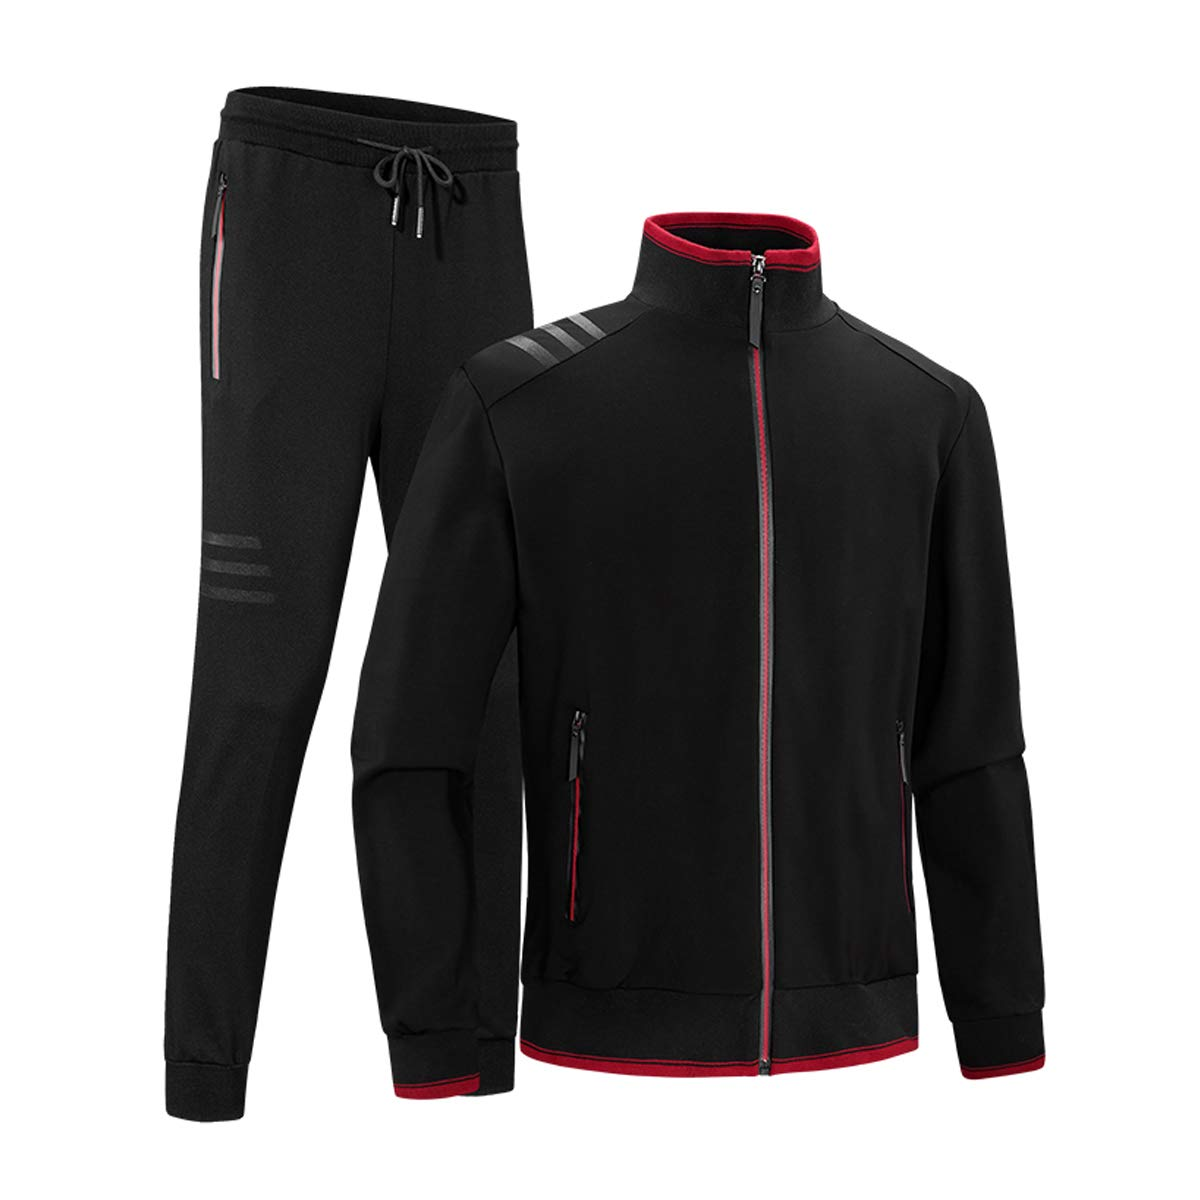 INVACHI Men's Casual 2 Pieces Contrast Cord Full Zip Sports Sets Jacket & Pants Active Fitness Tracksuit Set Black by INVACHI